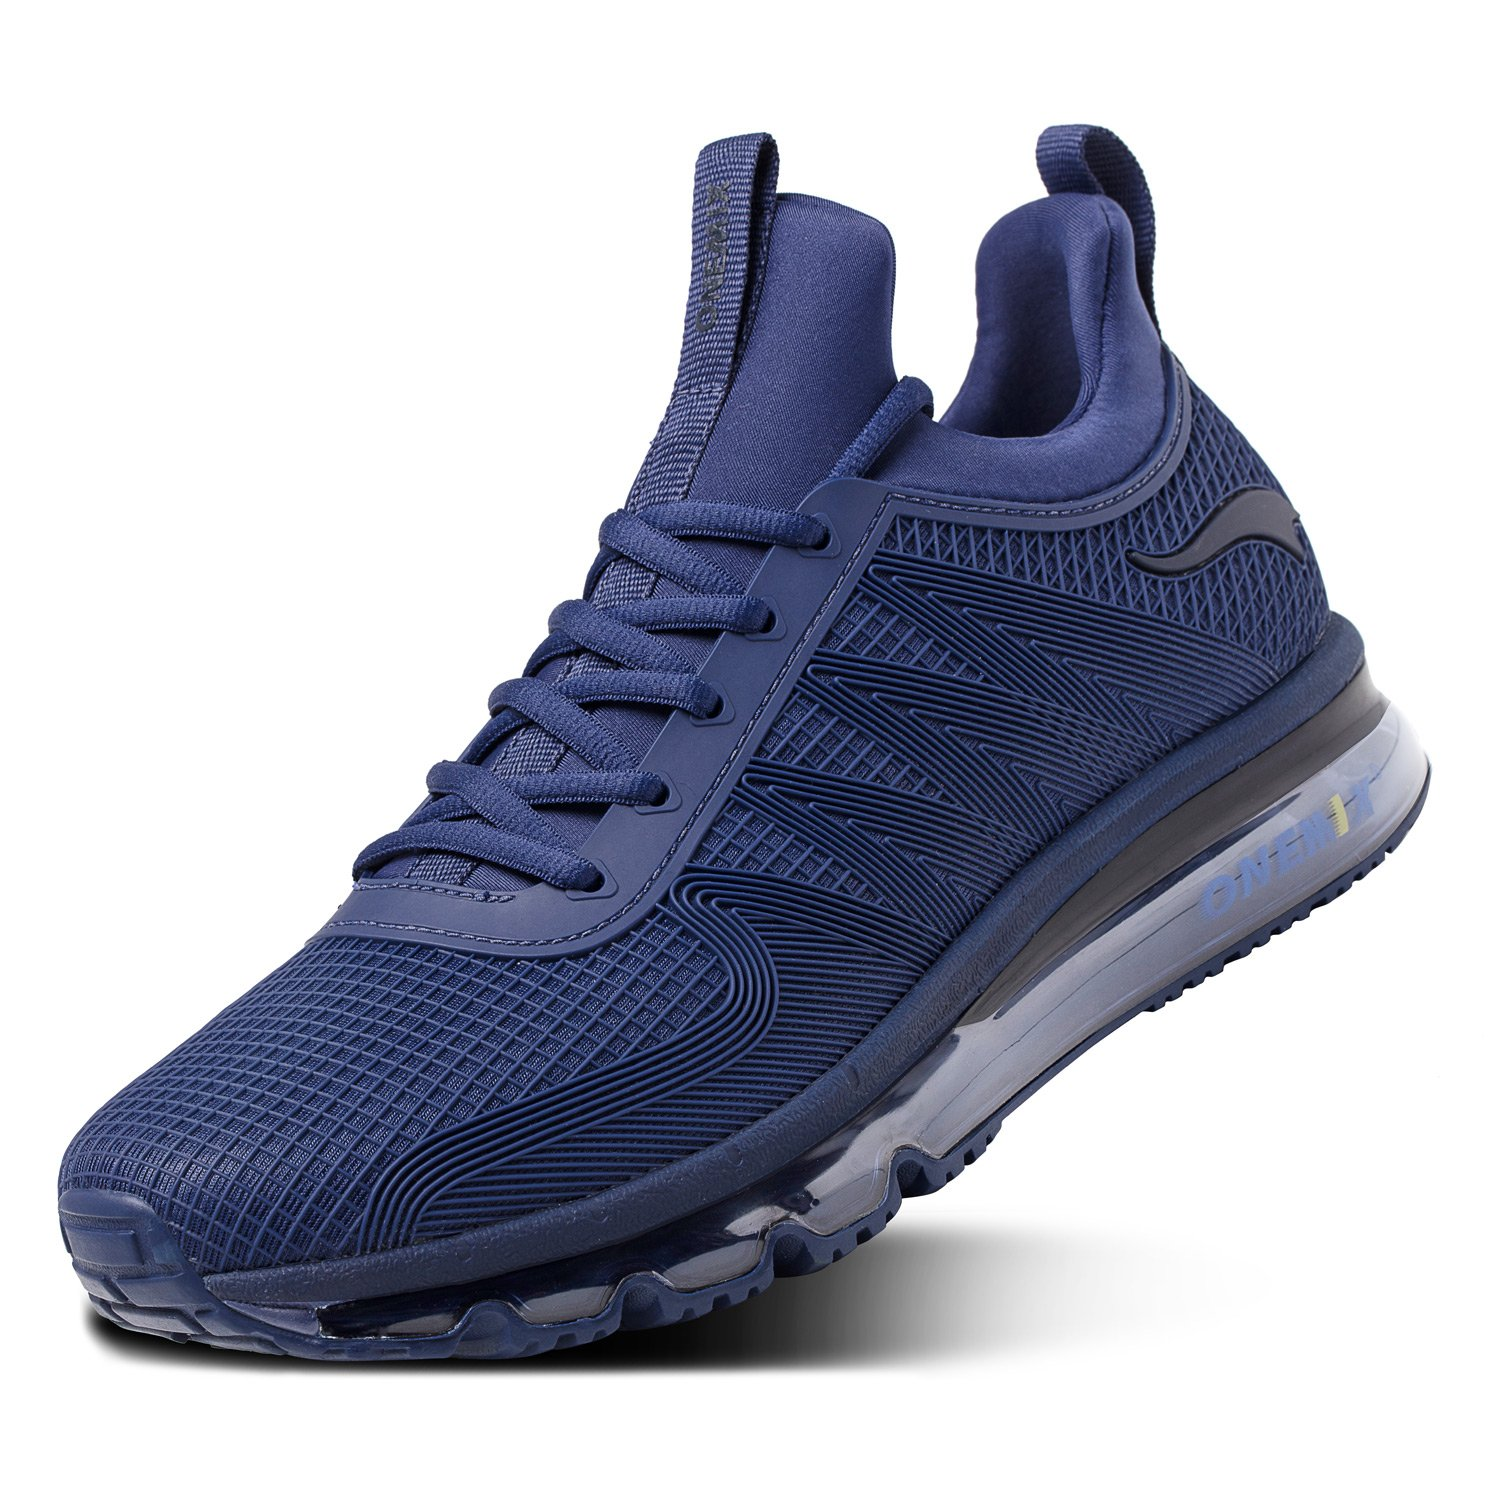 ONEMIX Air Cushion Men's Running Shoes Lightweight Fashion Sneakers Casual Shoes B07C18DQBC 8.5 D(M) US 10.43inch|Blue